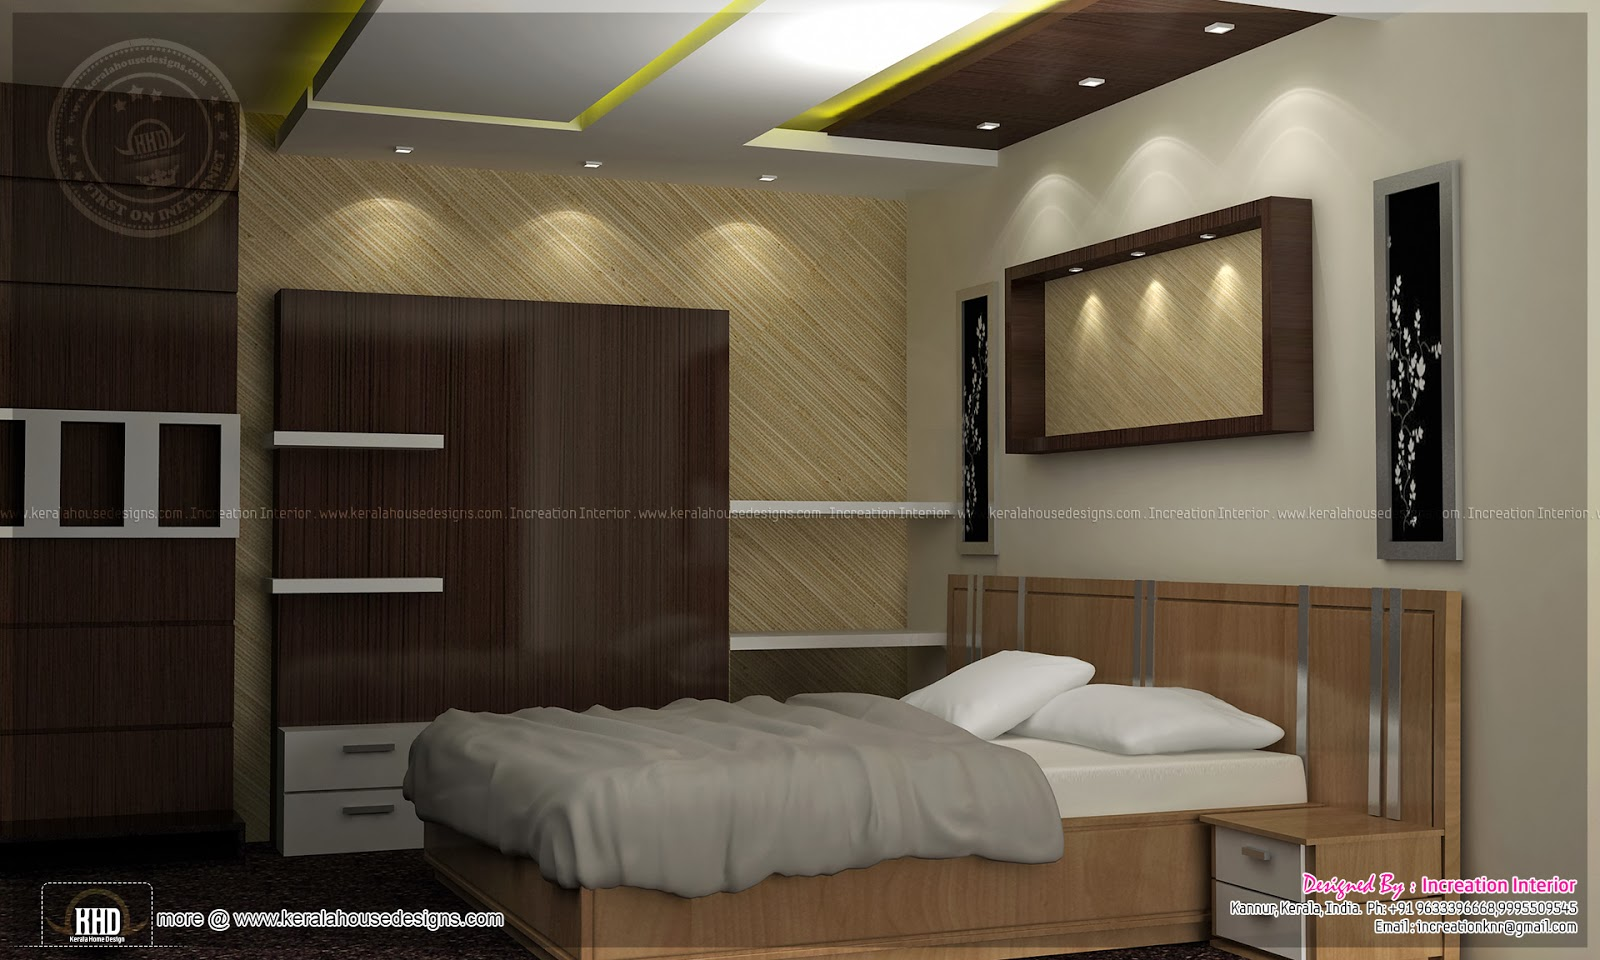 Bedroom interior designs indian house plans for Interior designs rooms